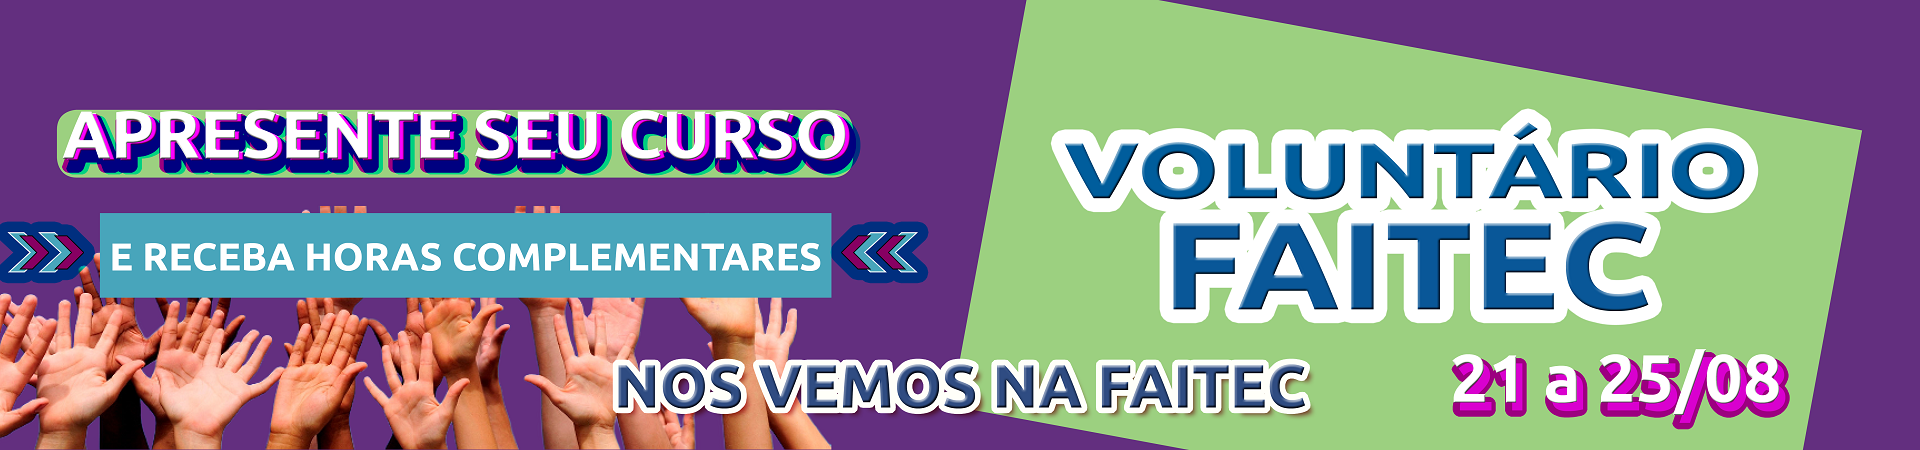 voluntarios-faitec-banner-site-02-08-2019-3